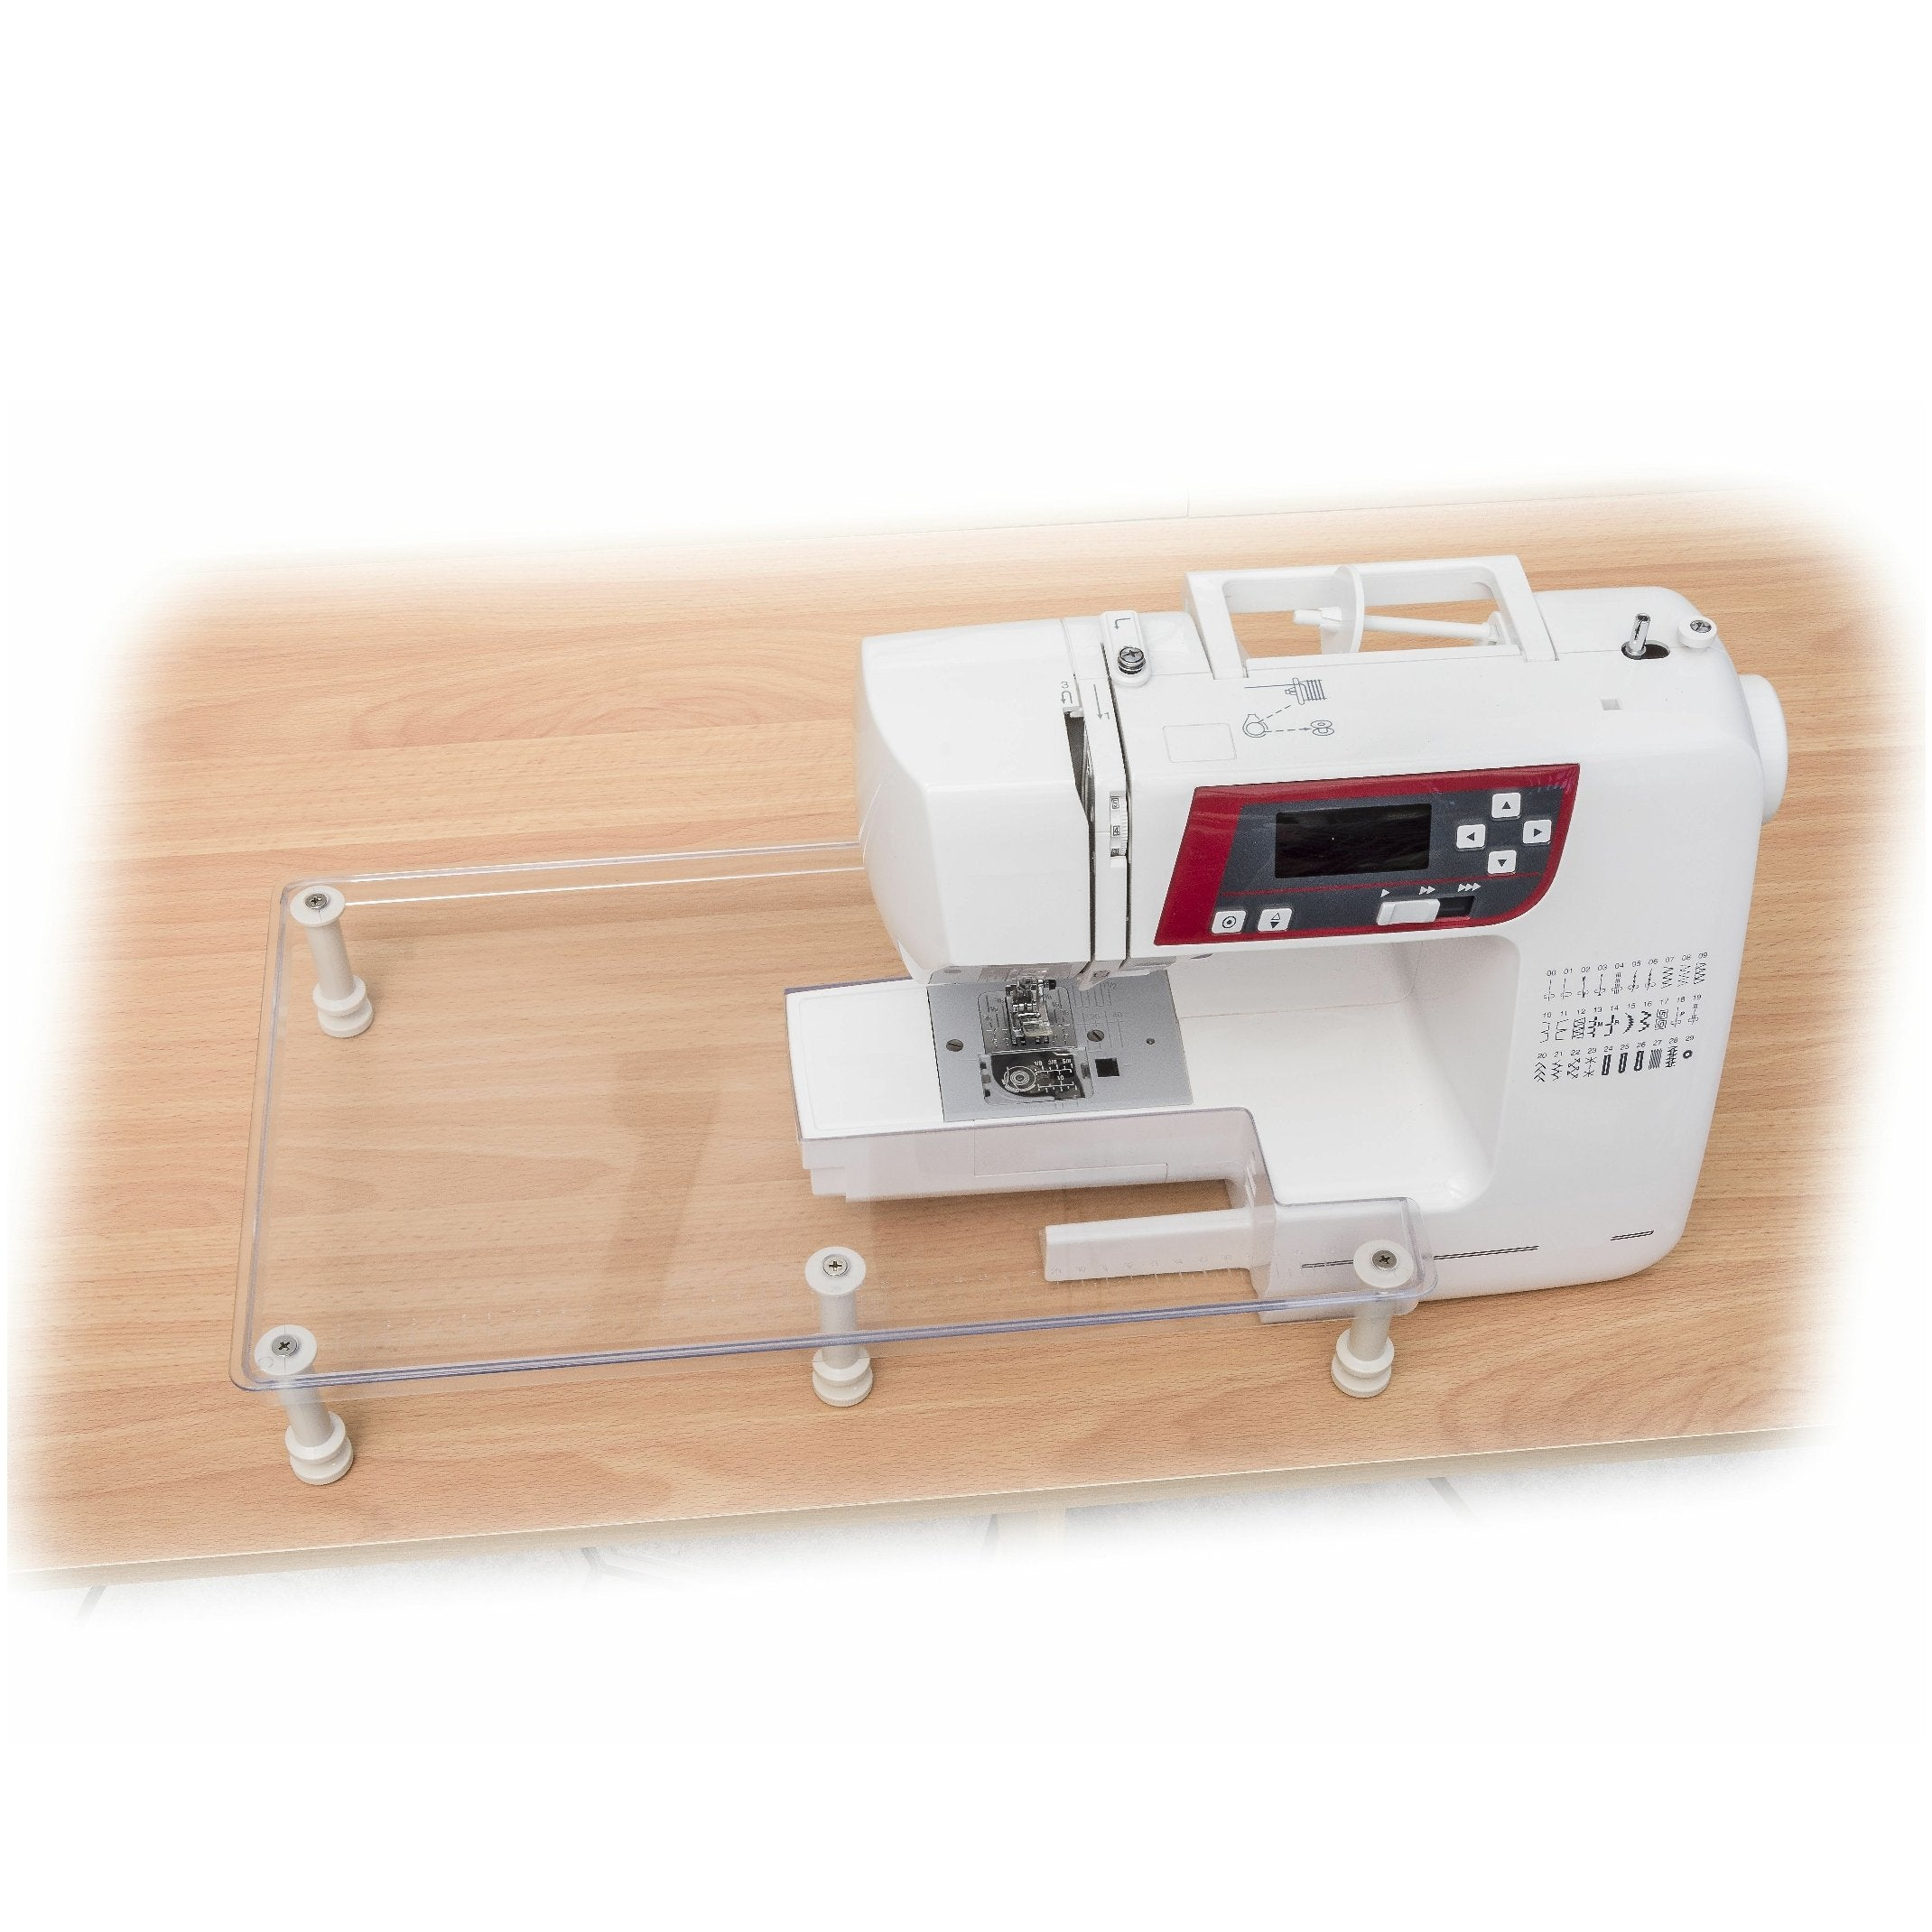 Sewing Machine Extension Table - Fits any model